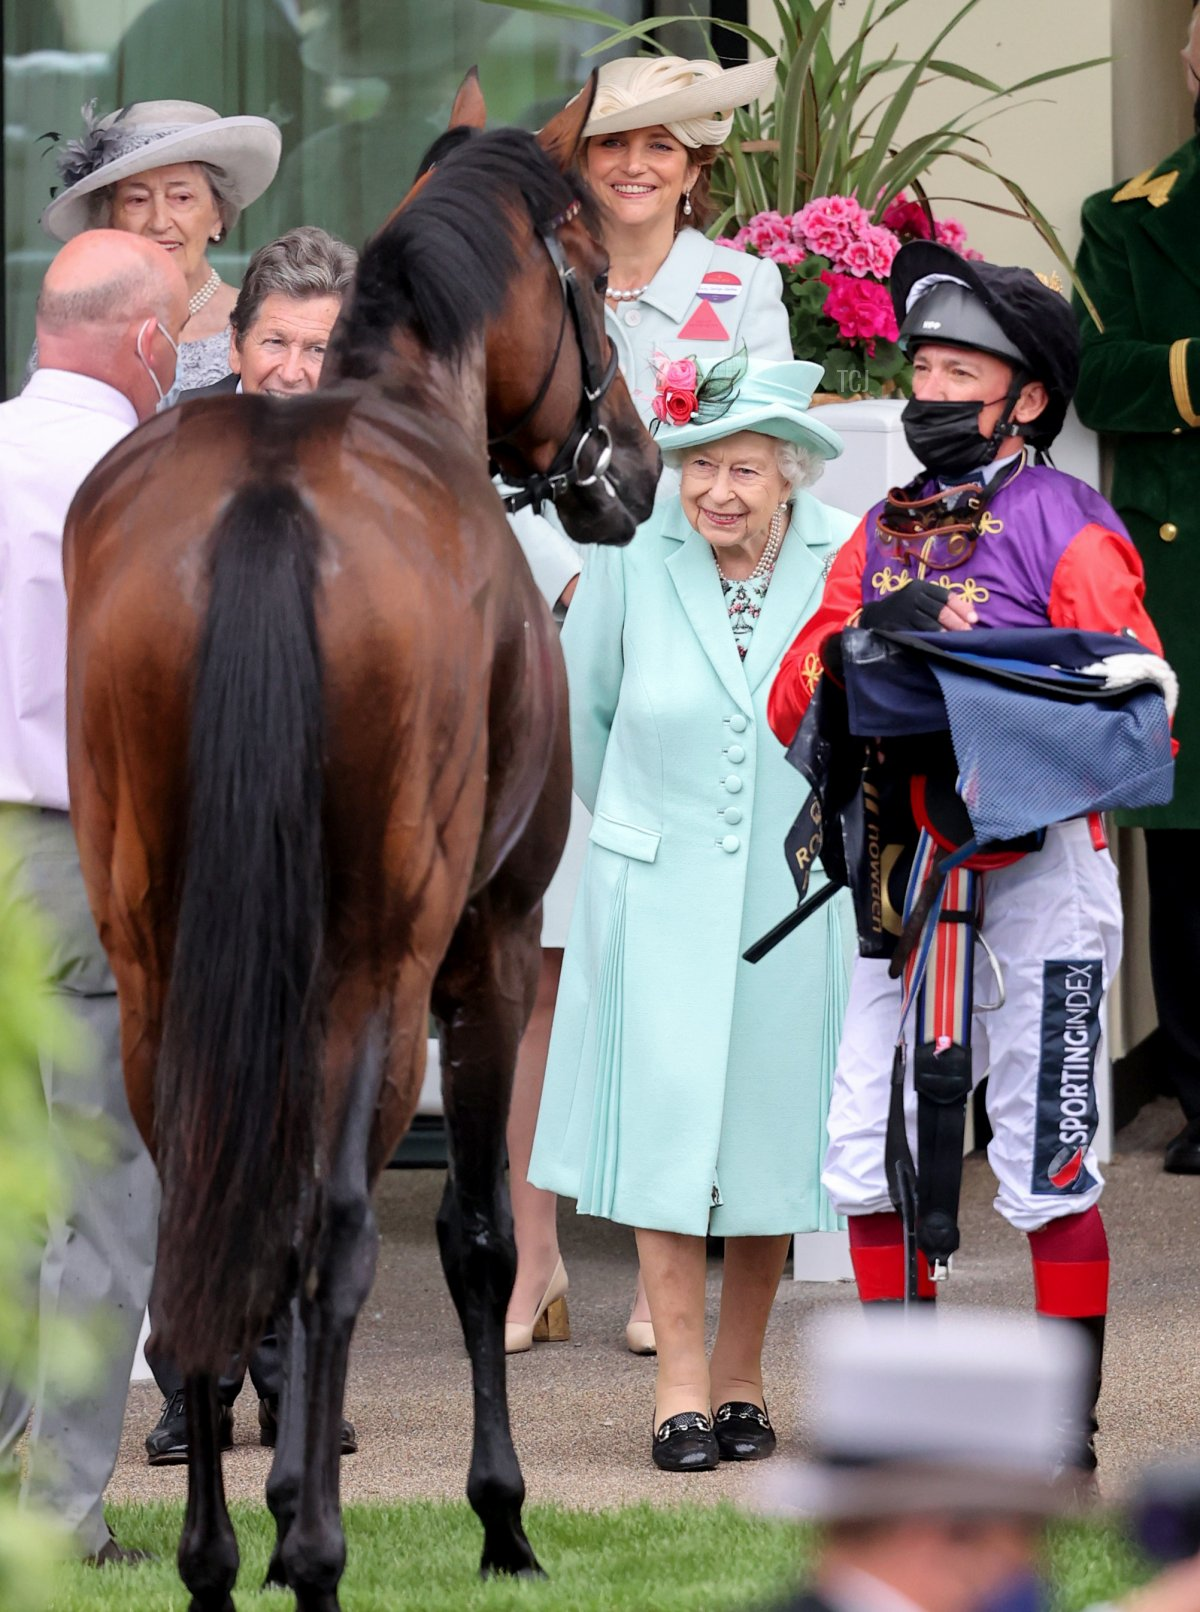 Queen Elizabeth II and Frankie Dettori (R) during Royal Ascot 2021 at Ascot Racecourse on June 19, 2021 in Ascot, England